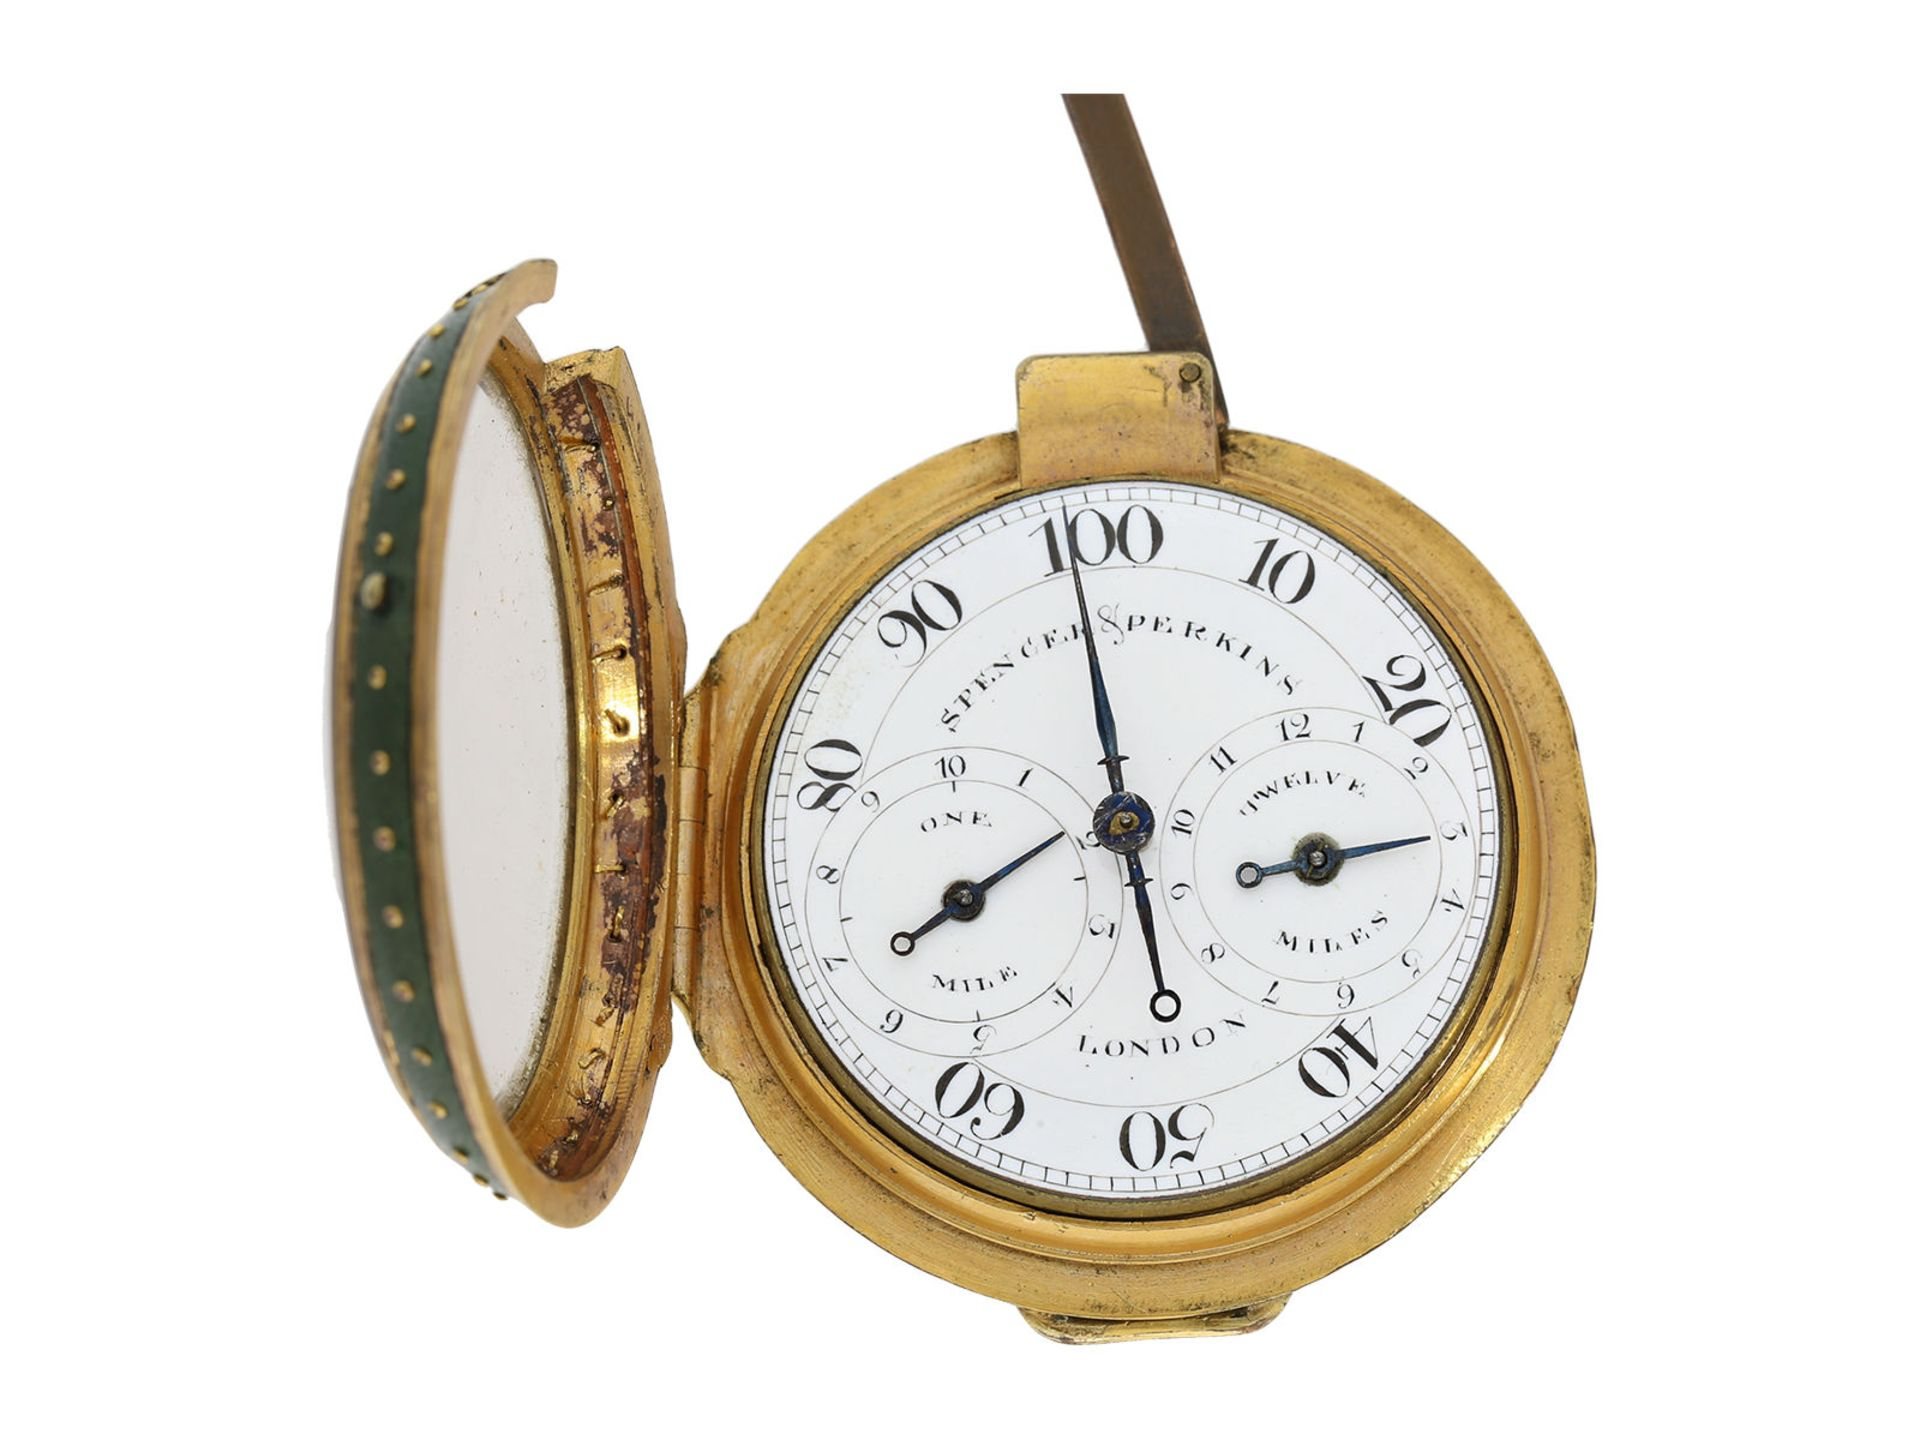 Pocket watch: very early and rare English pedometer, Spencer and Perkins London, ca. 1780 - Bild 4 aus 4